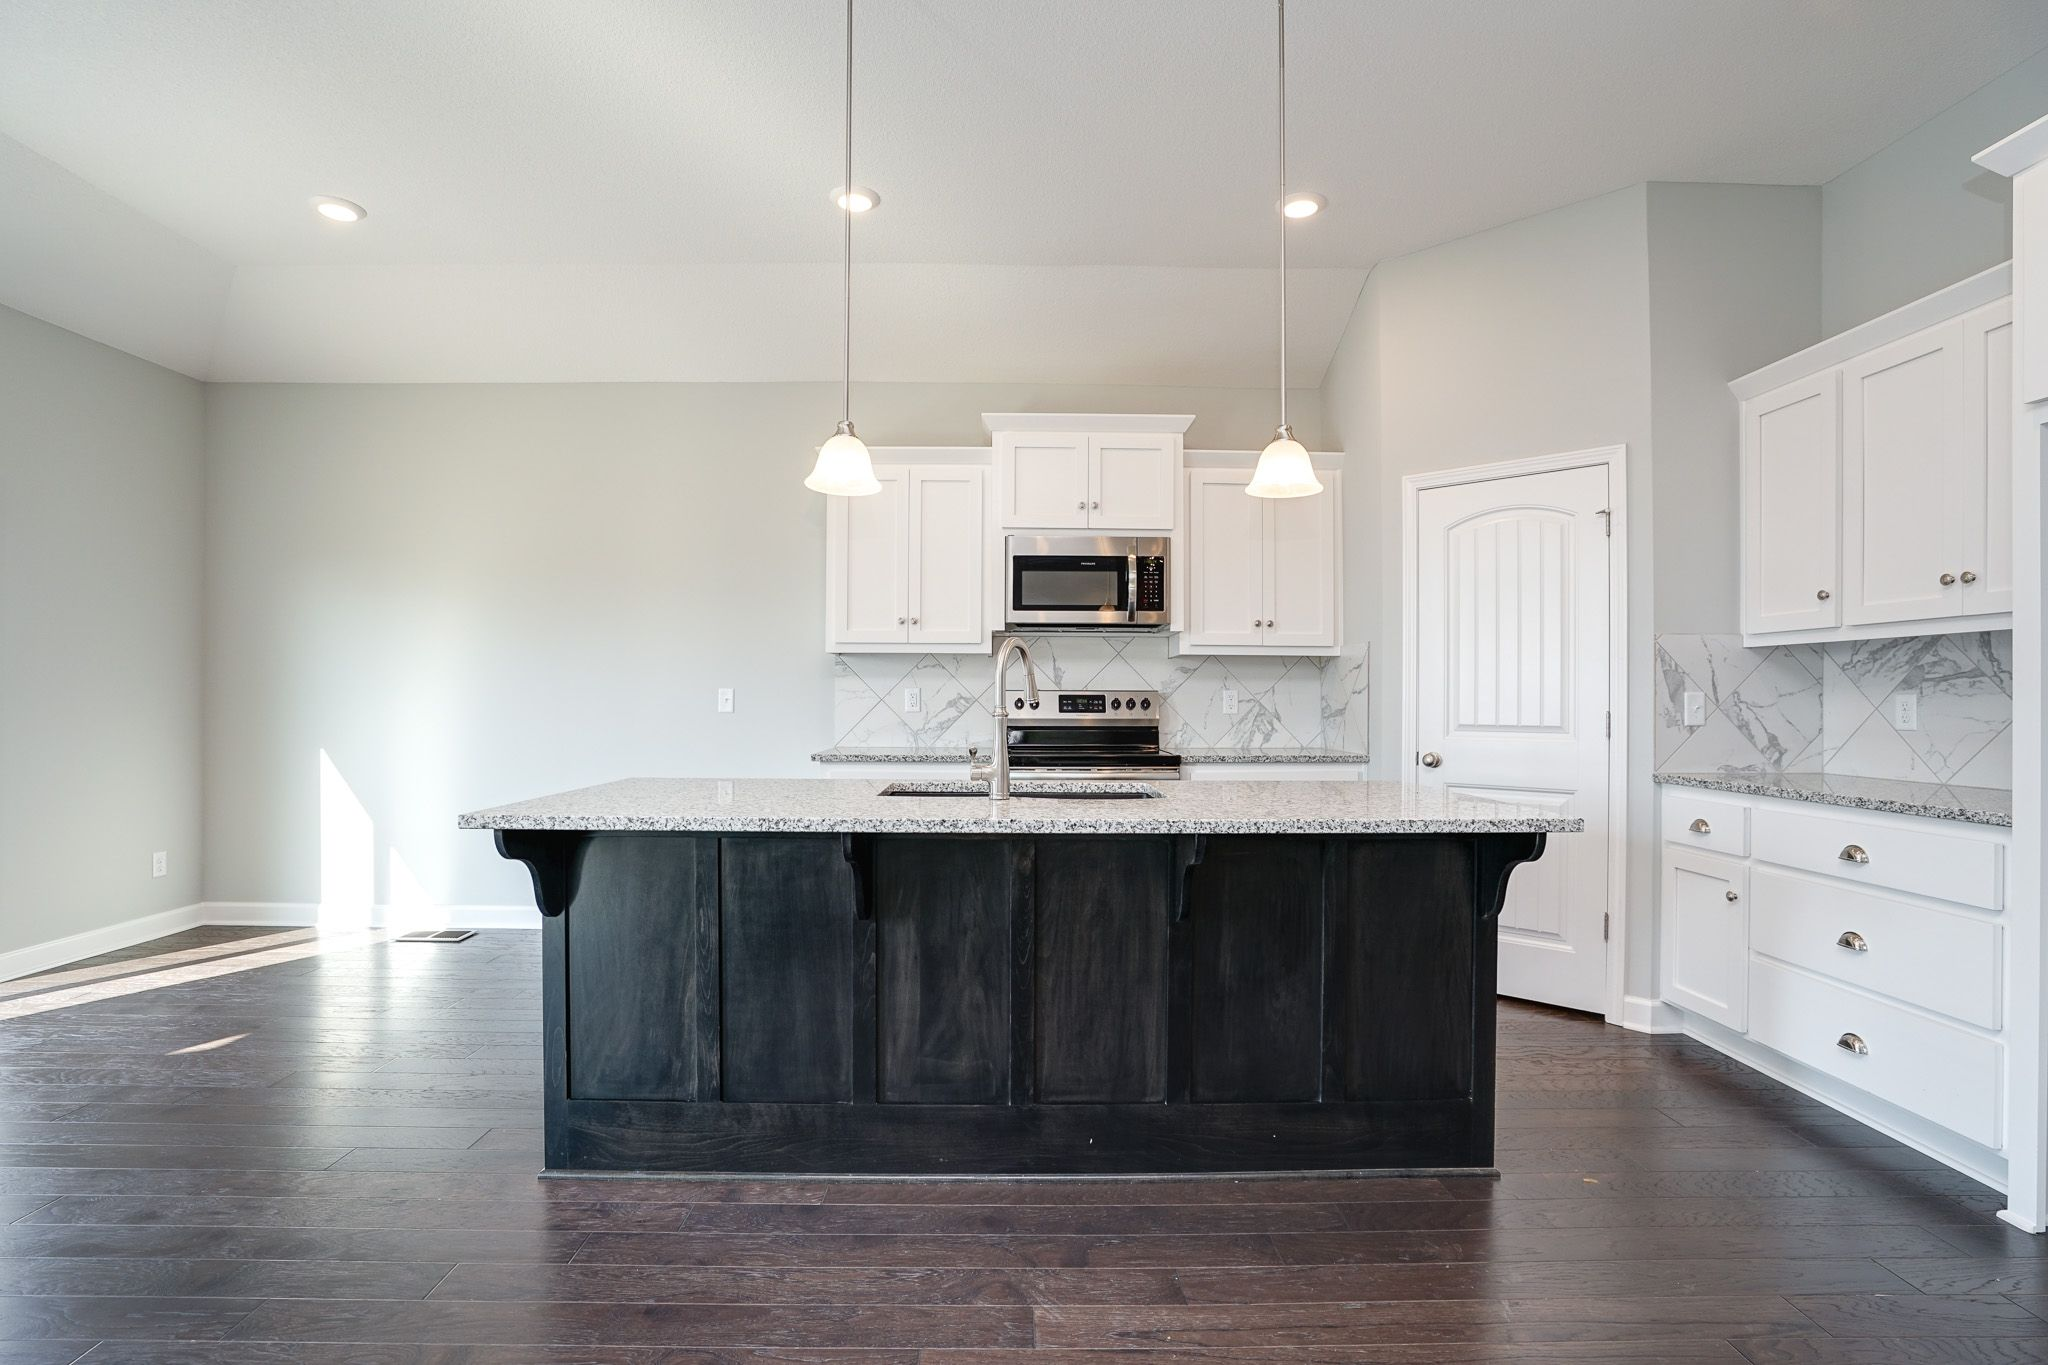 Kitchen featured in the Westport By Summit Homes in Kansas City, MO